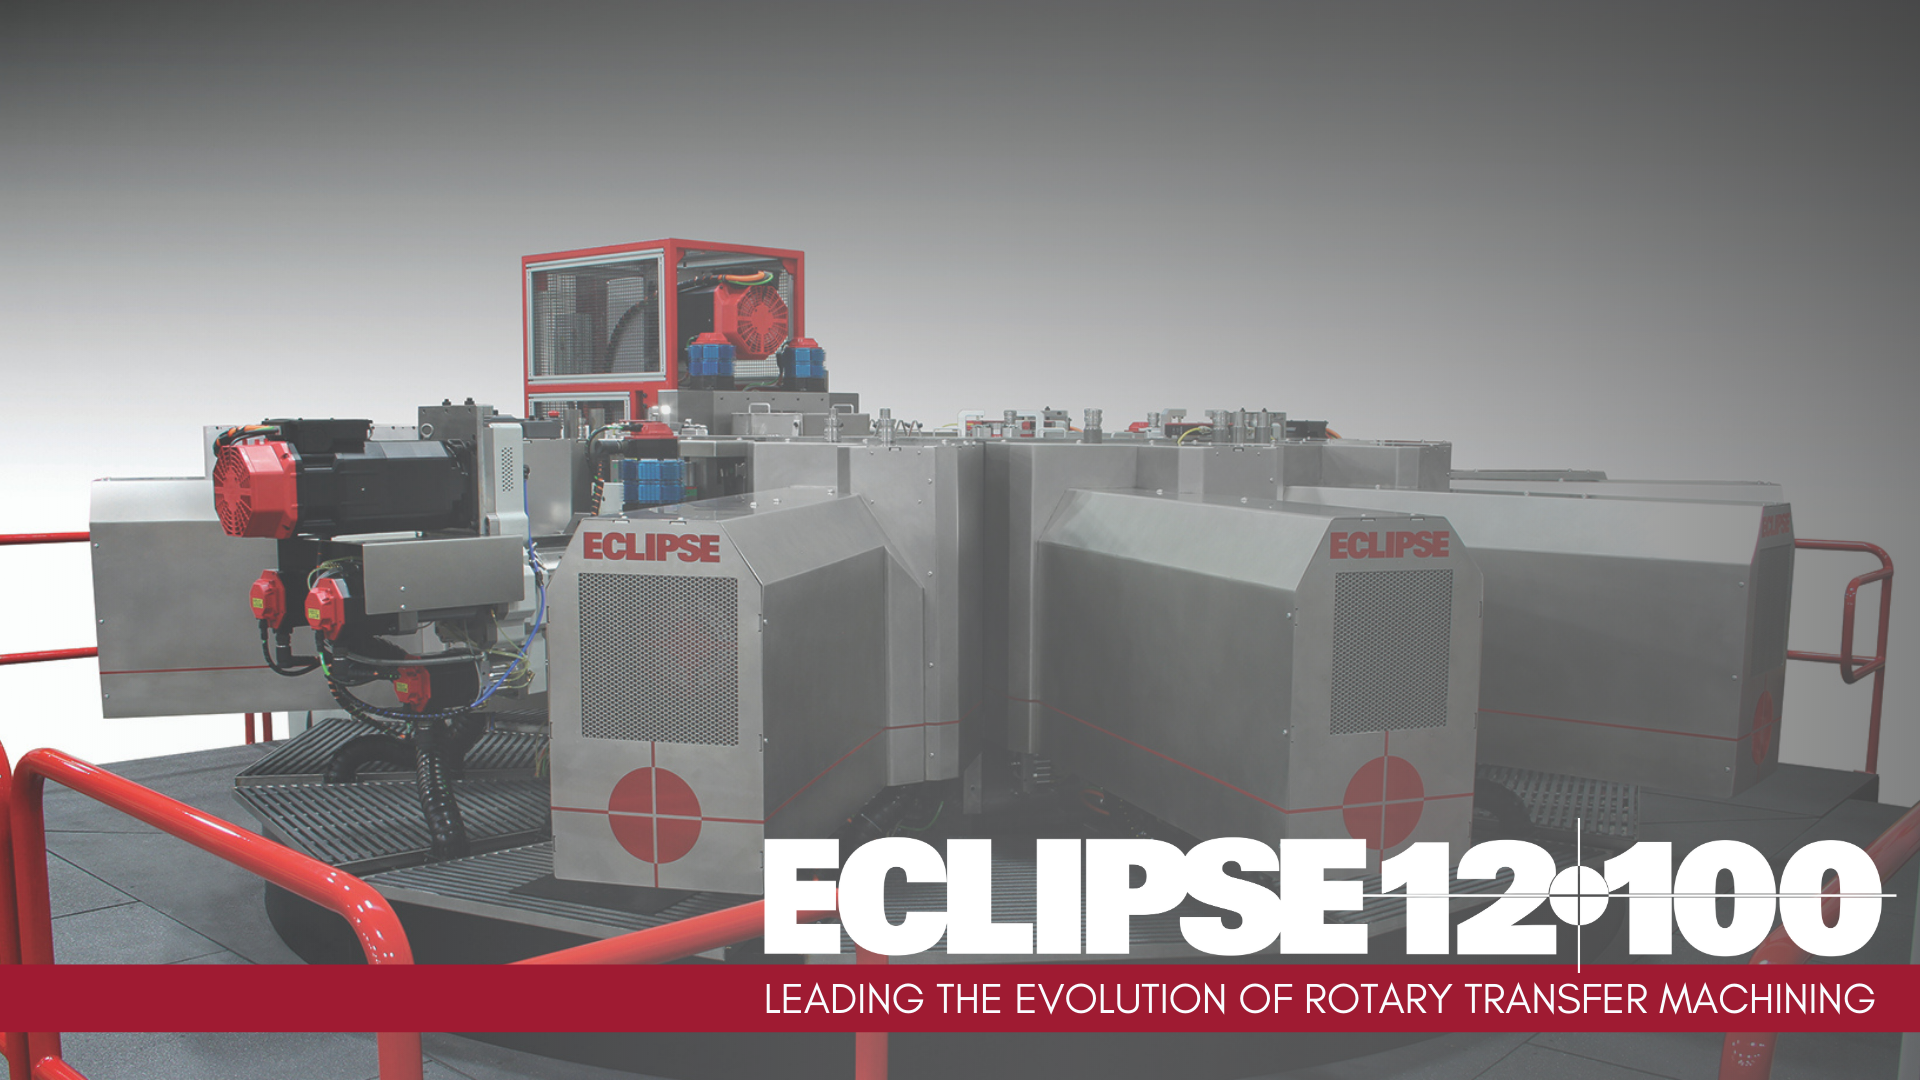 Eclipse 12-100